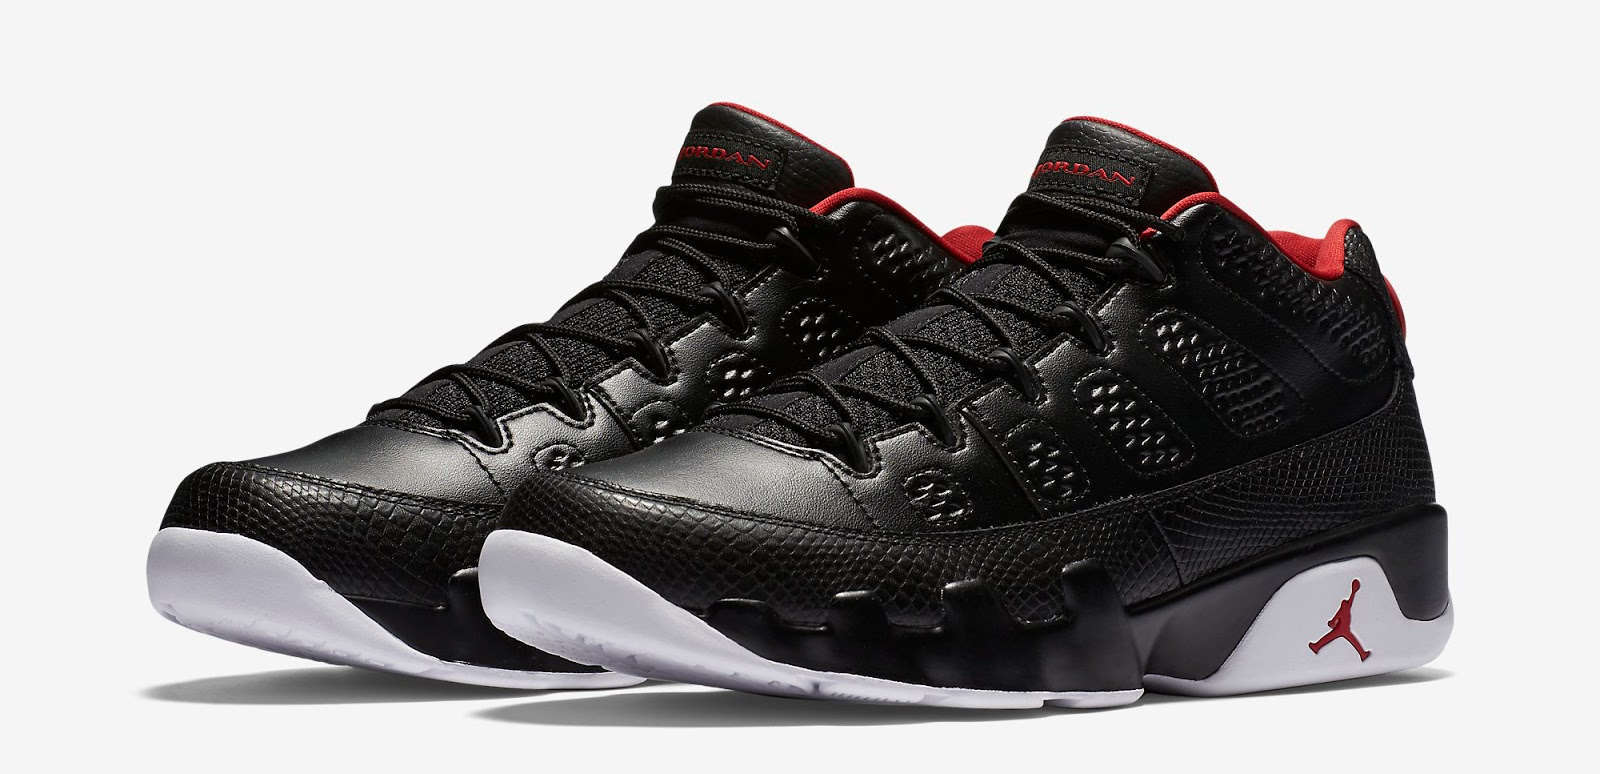 3bc9f9ed515c ajordanxi Your  1 Source For Sneaker Release Dates  Air Jordan 9 Retro Low  Black White-Gym Red Release Reminder